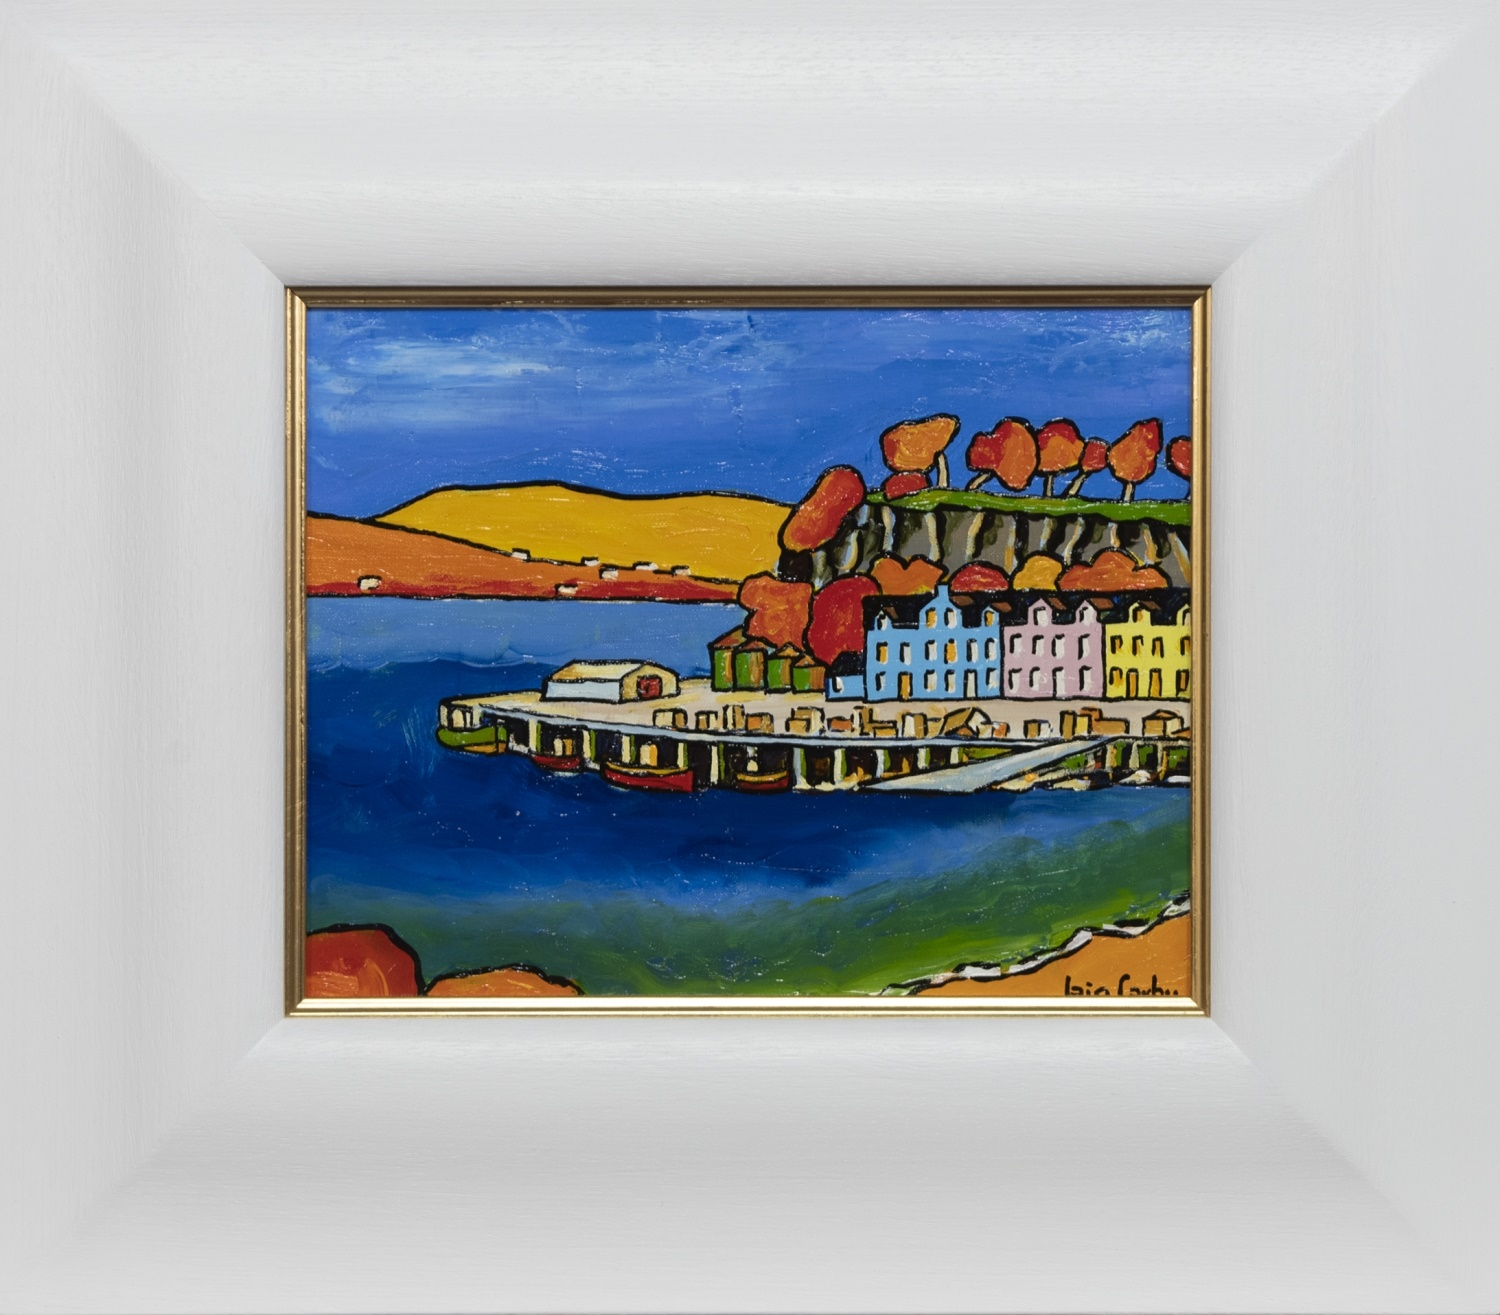 AUTUMN IN PORT RIGH, AN OIL BY IAIN CARBY